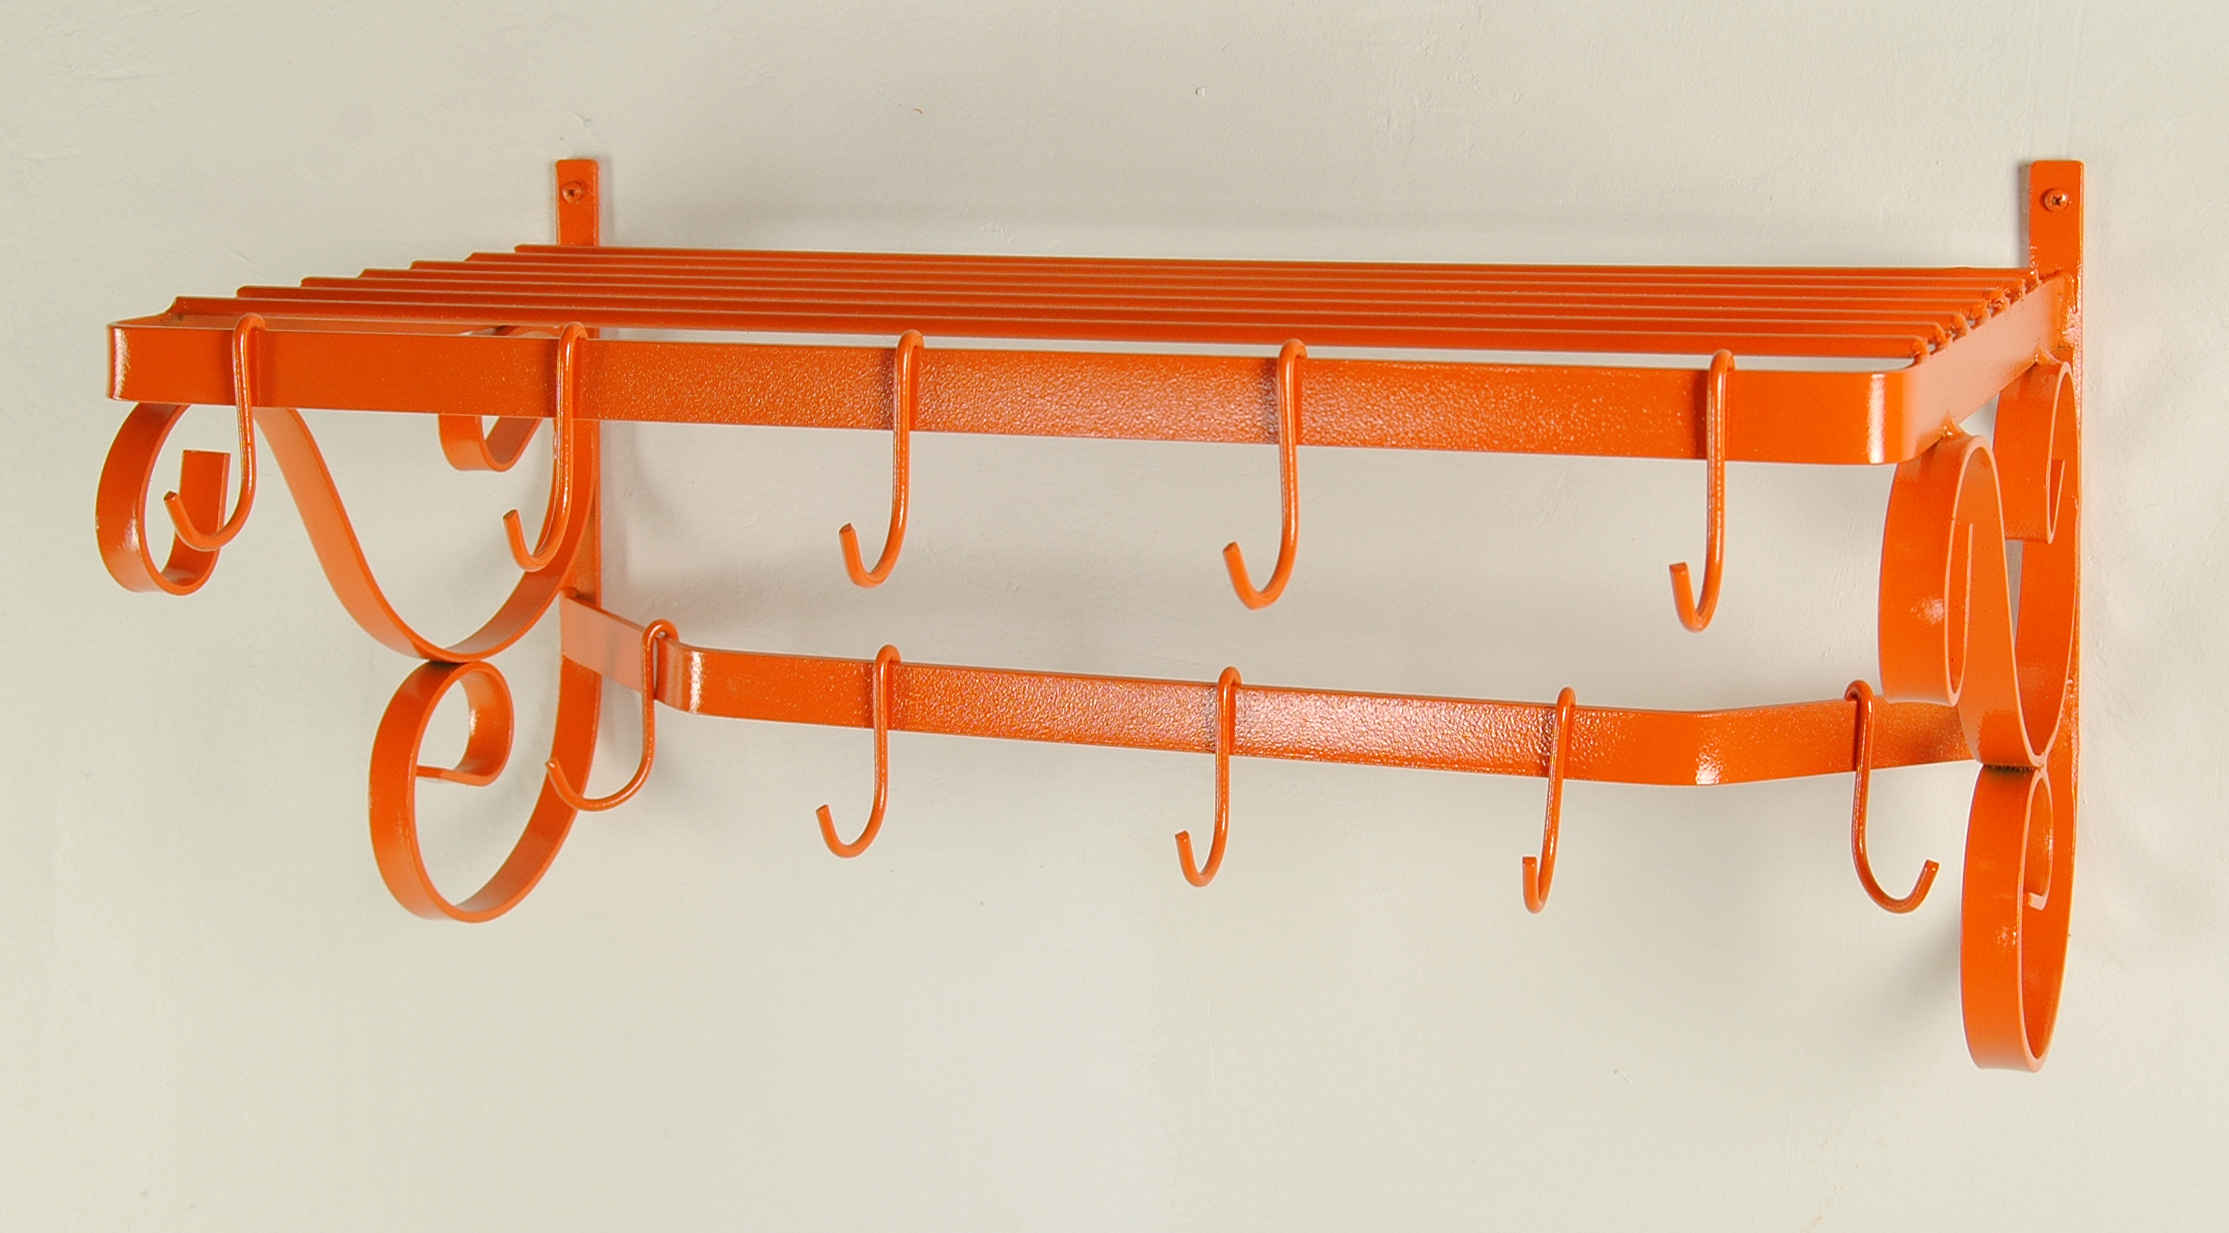 wall mounted pot rack in bold tangerine orange finish